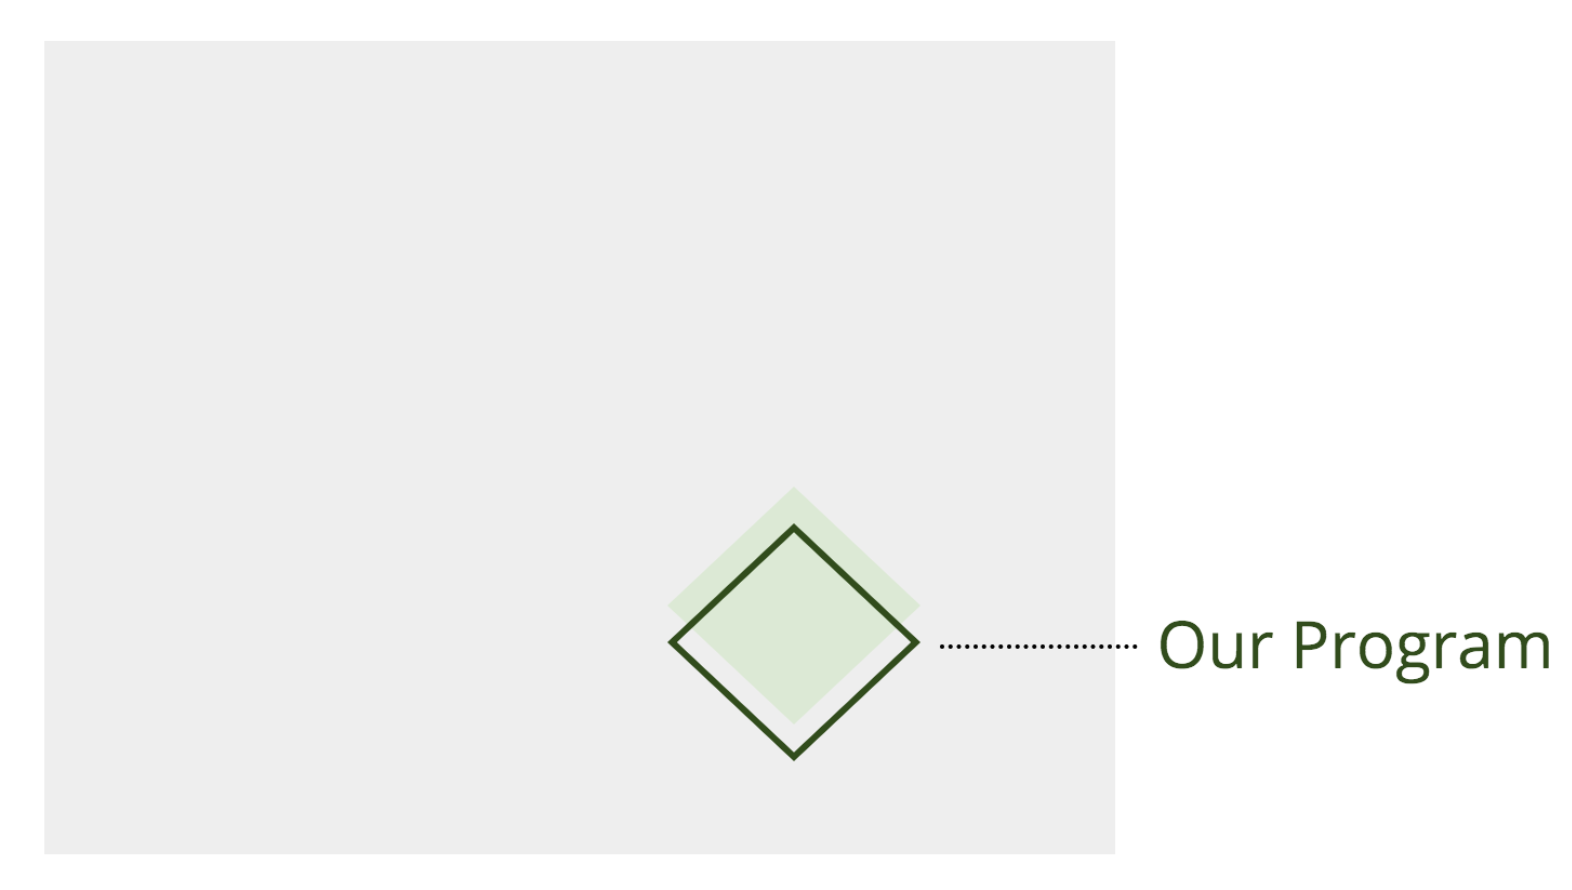 The same gray box and green diamond shown earlier, but with a green border around the diamond that is slightly off center to indicate room for error.